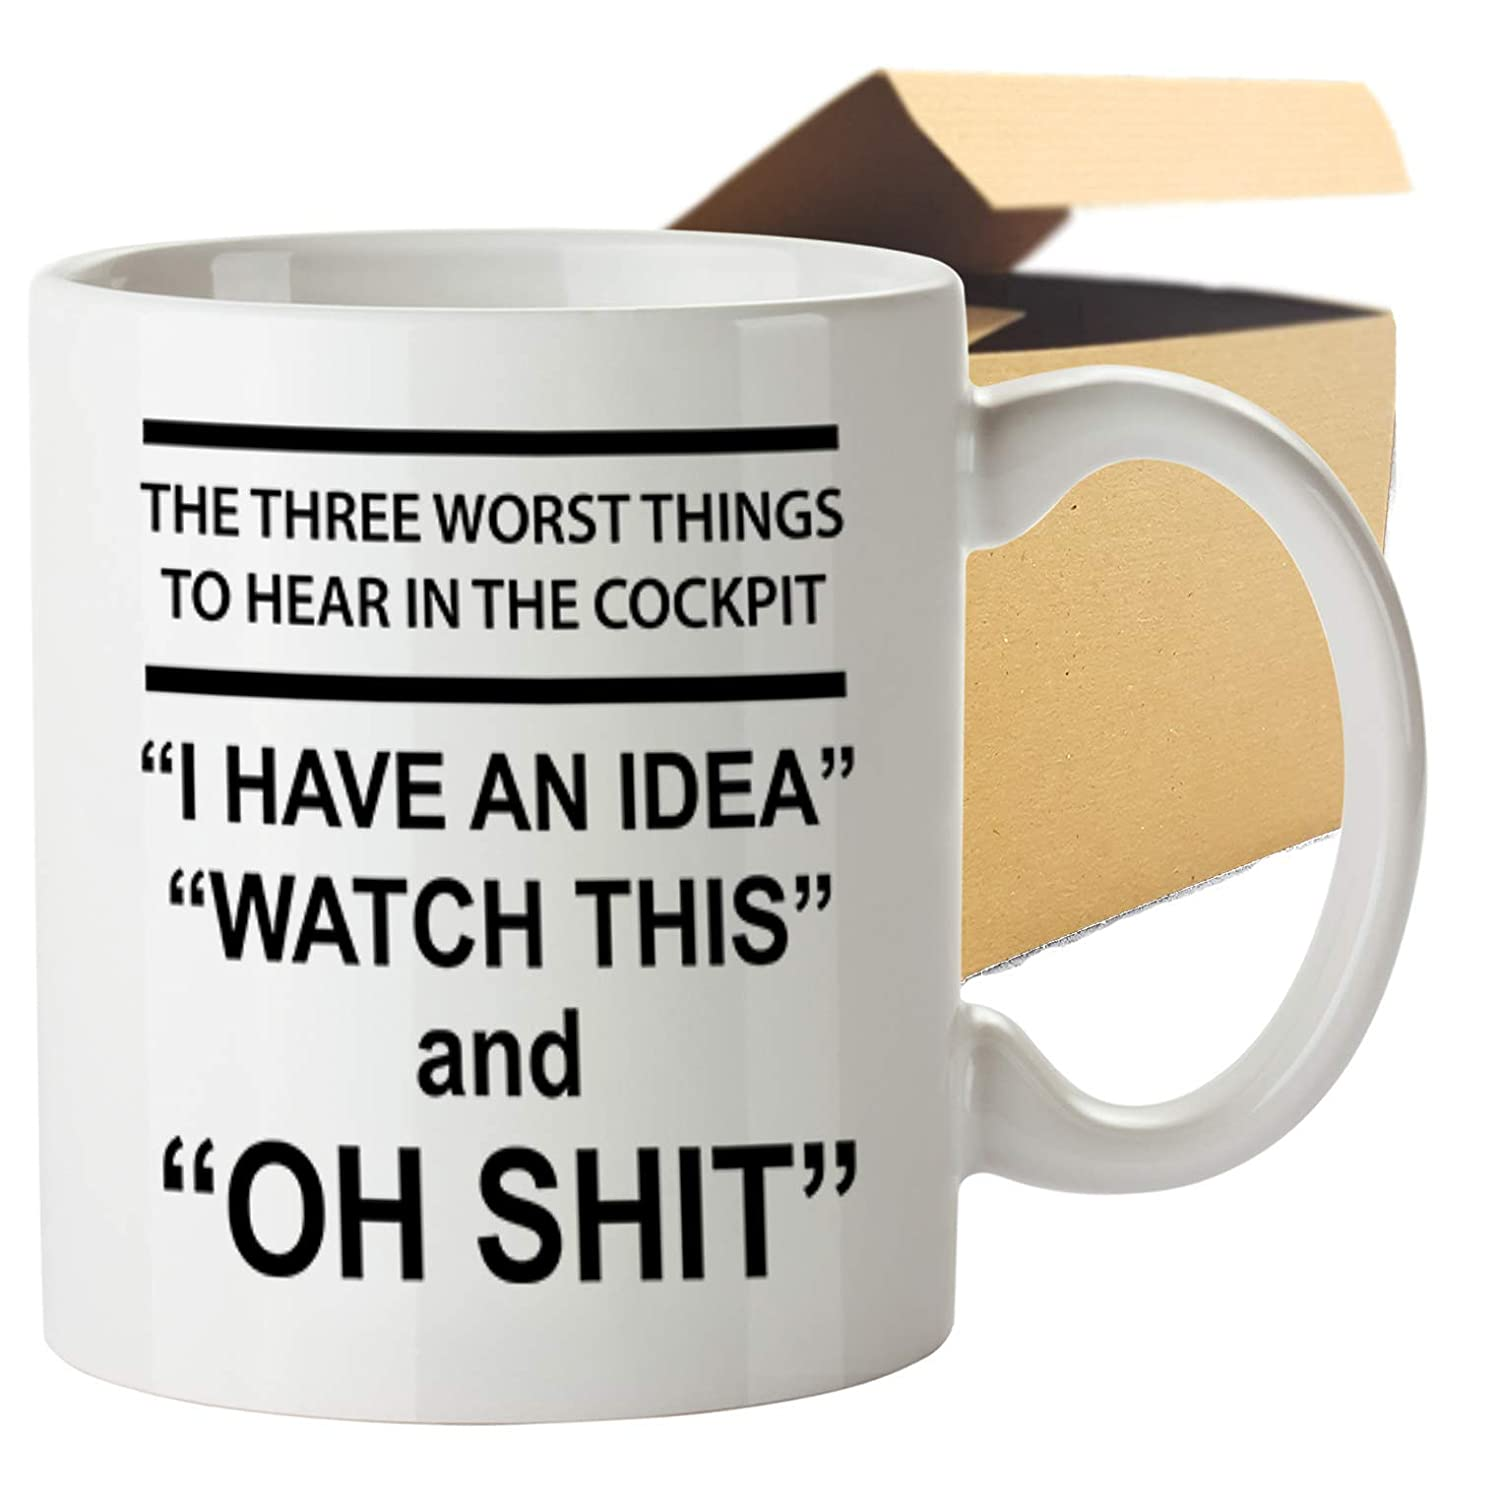 3 Washeramp; Printed Worst Ceramic Things In For Novelty Cups To Dish Mug11 Pilot A Safe Cockpit – Oz Hear Funny Coffee Gift Microwave W2Y9eDHEI